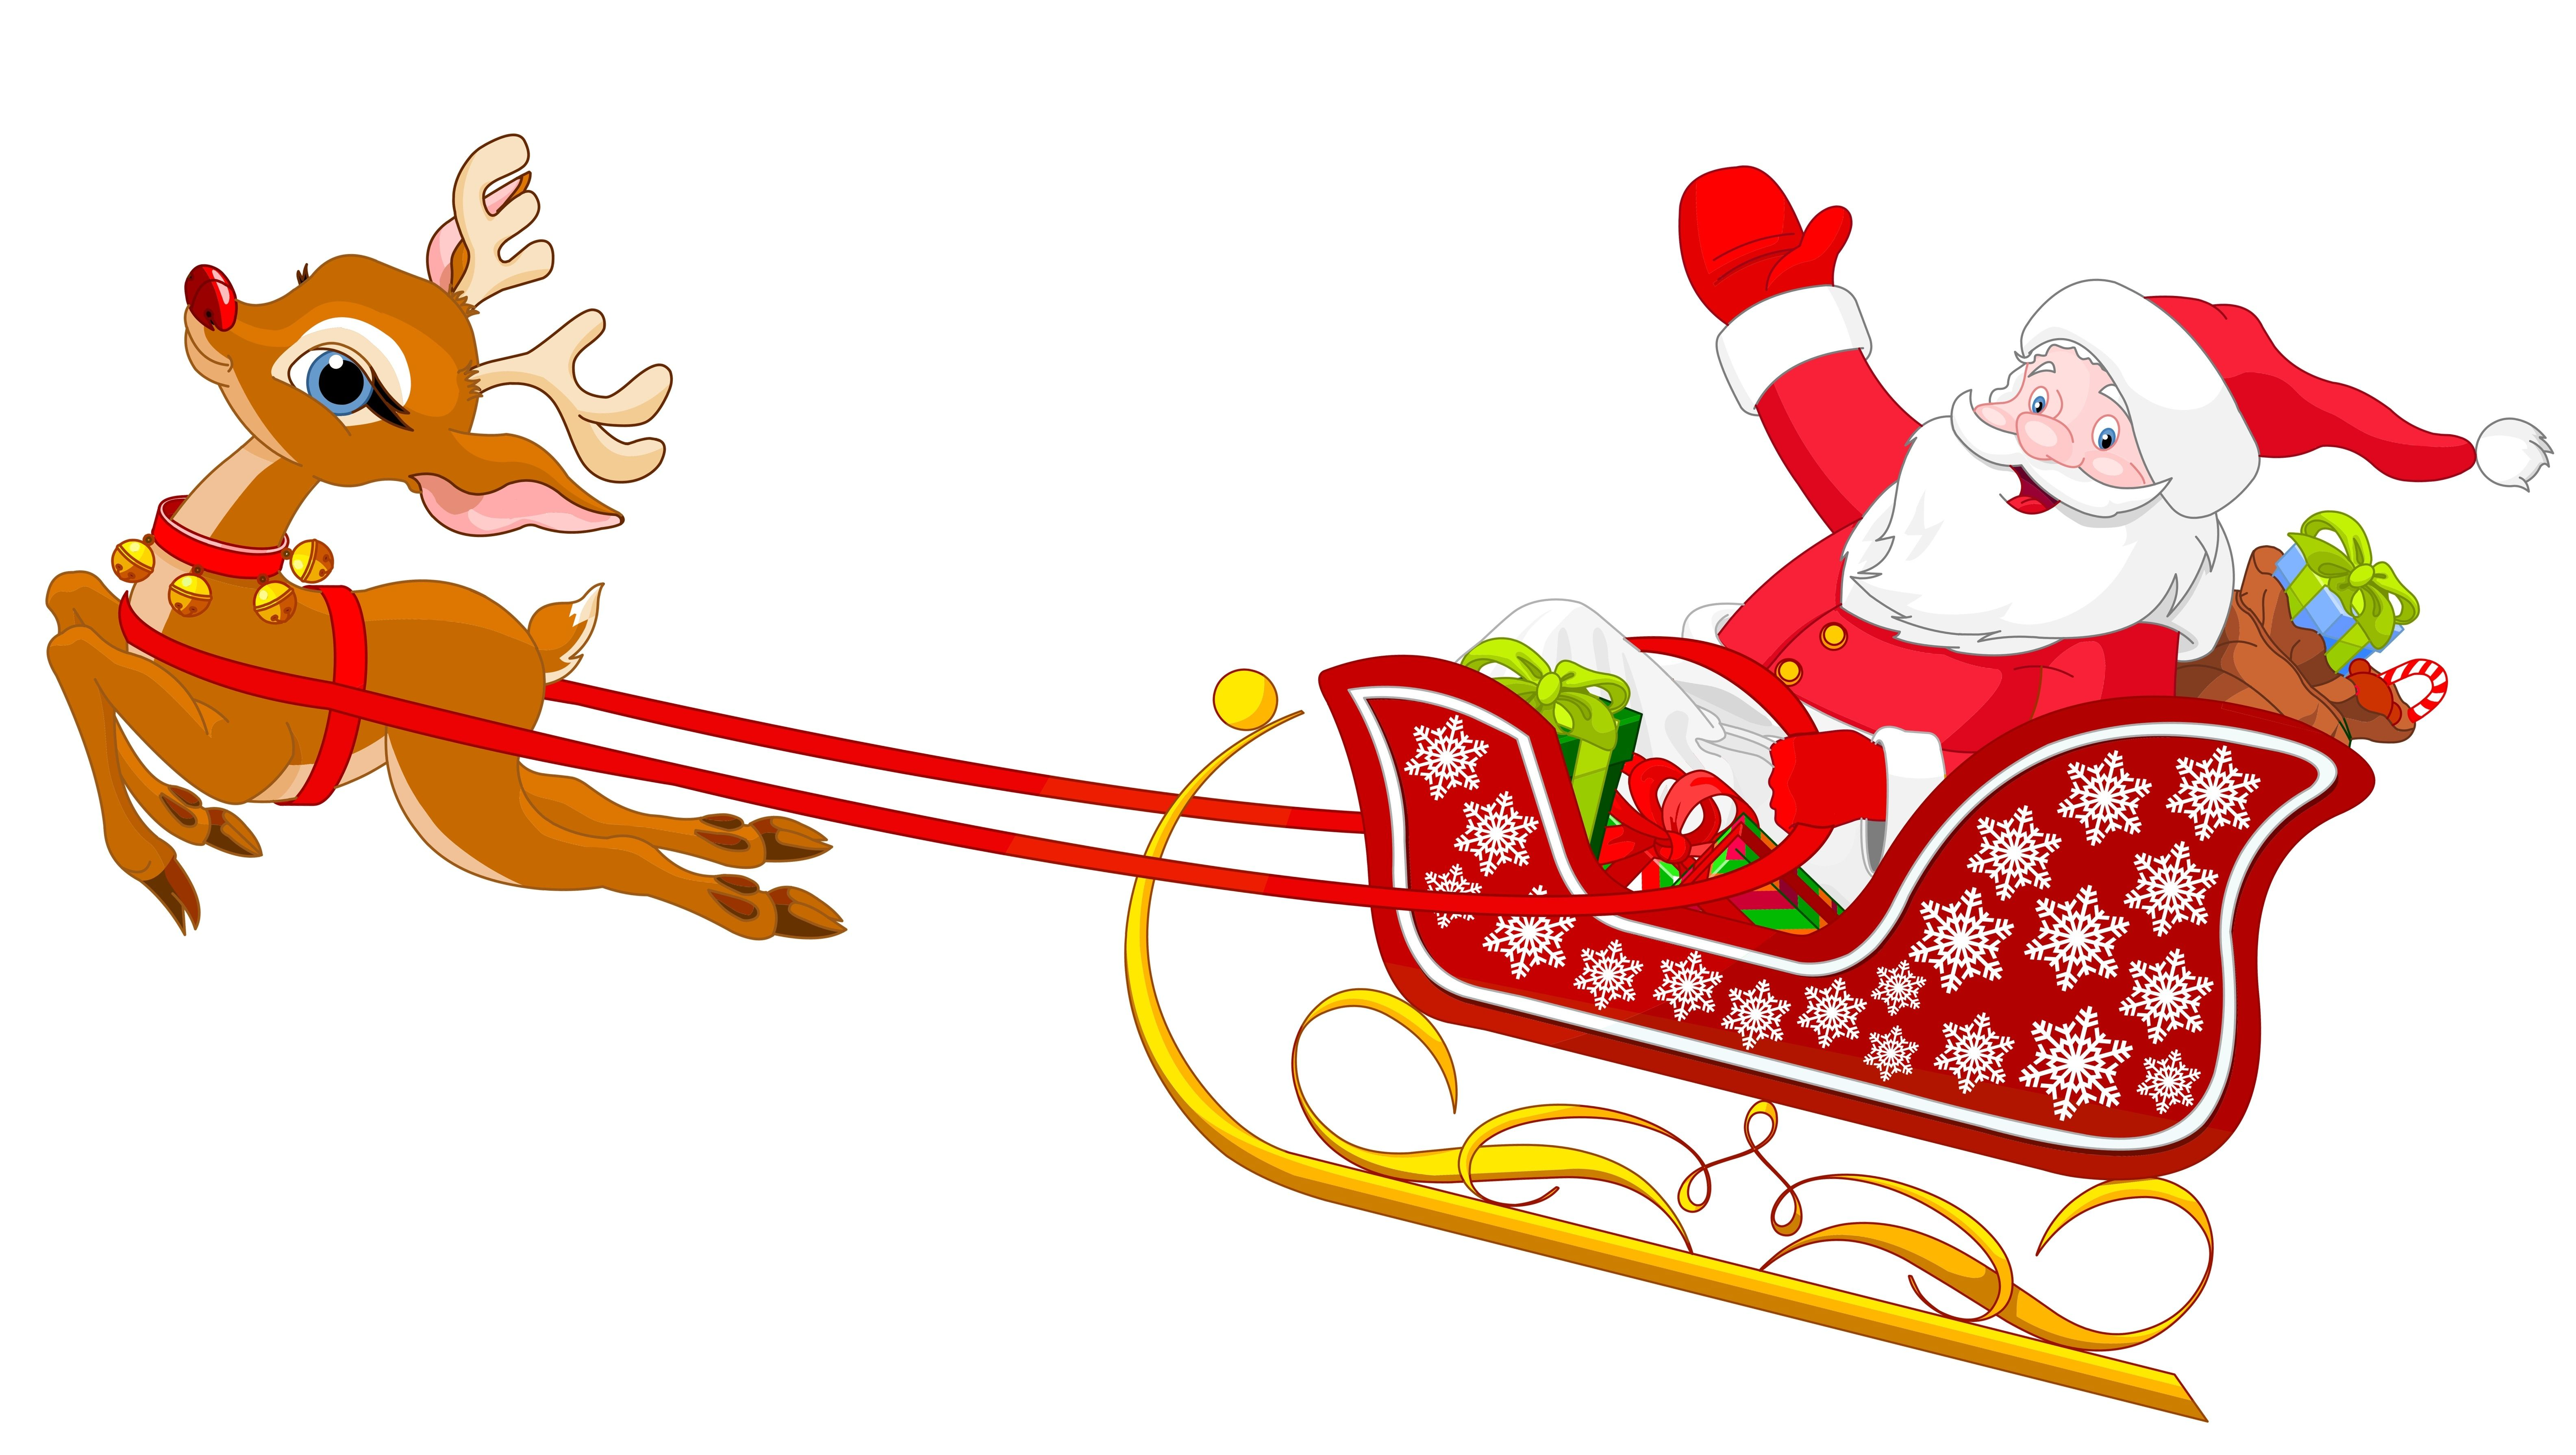 Reindeer and santa clipart jpg freeuse download A little Christmas song | My pins | Santa sleigh, Santa ... jpg freeuse download